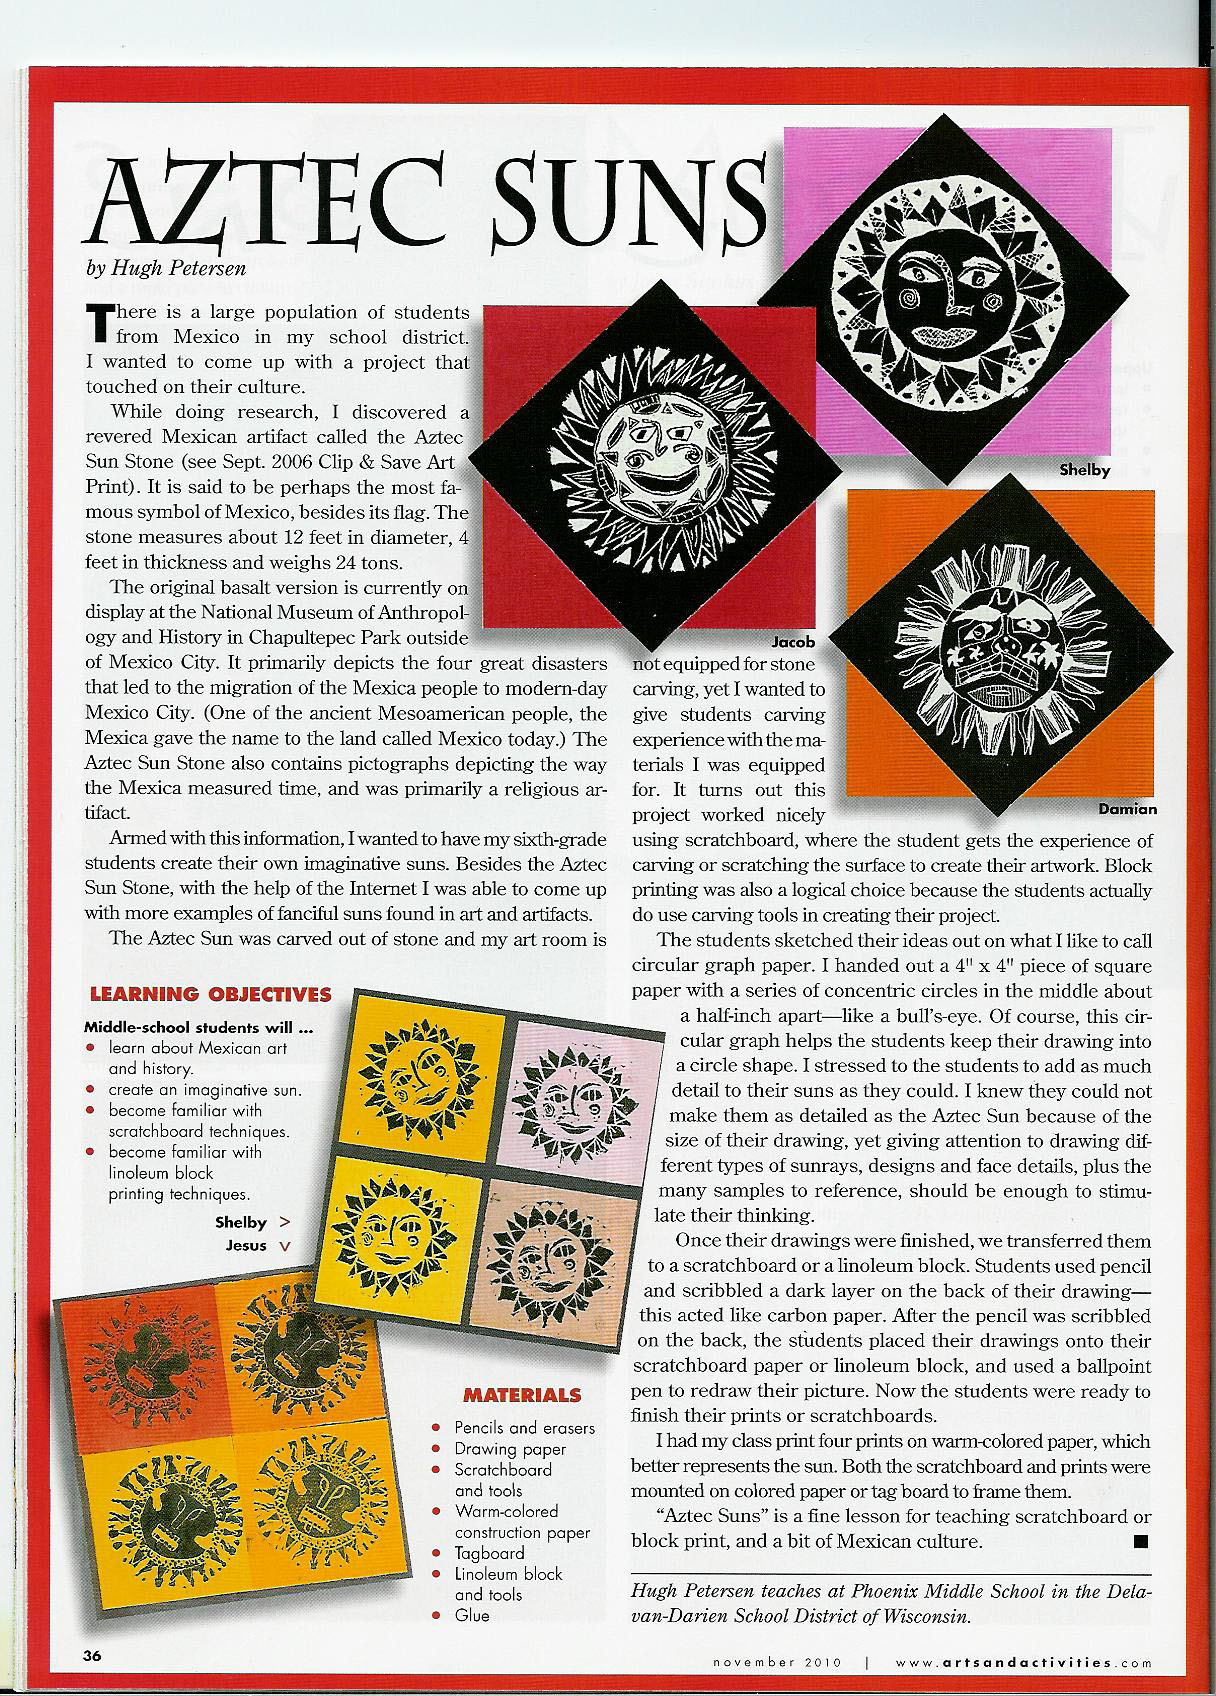 Aztec Calendar Art Lesson Plan : Art teacher s lessons published in national magazine